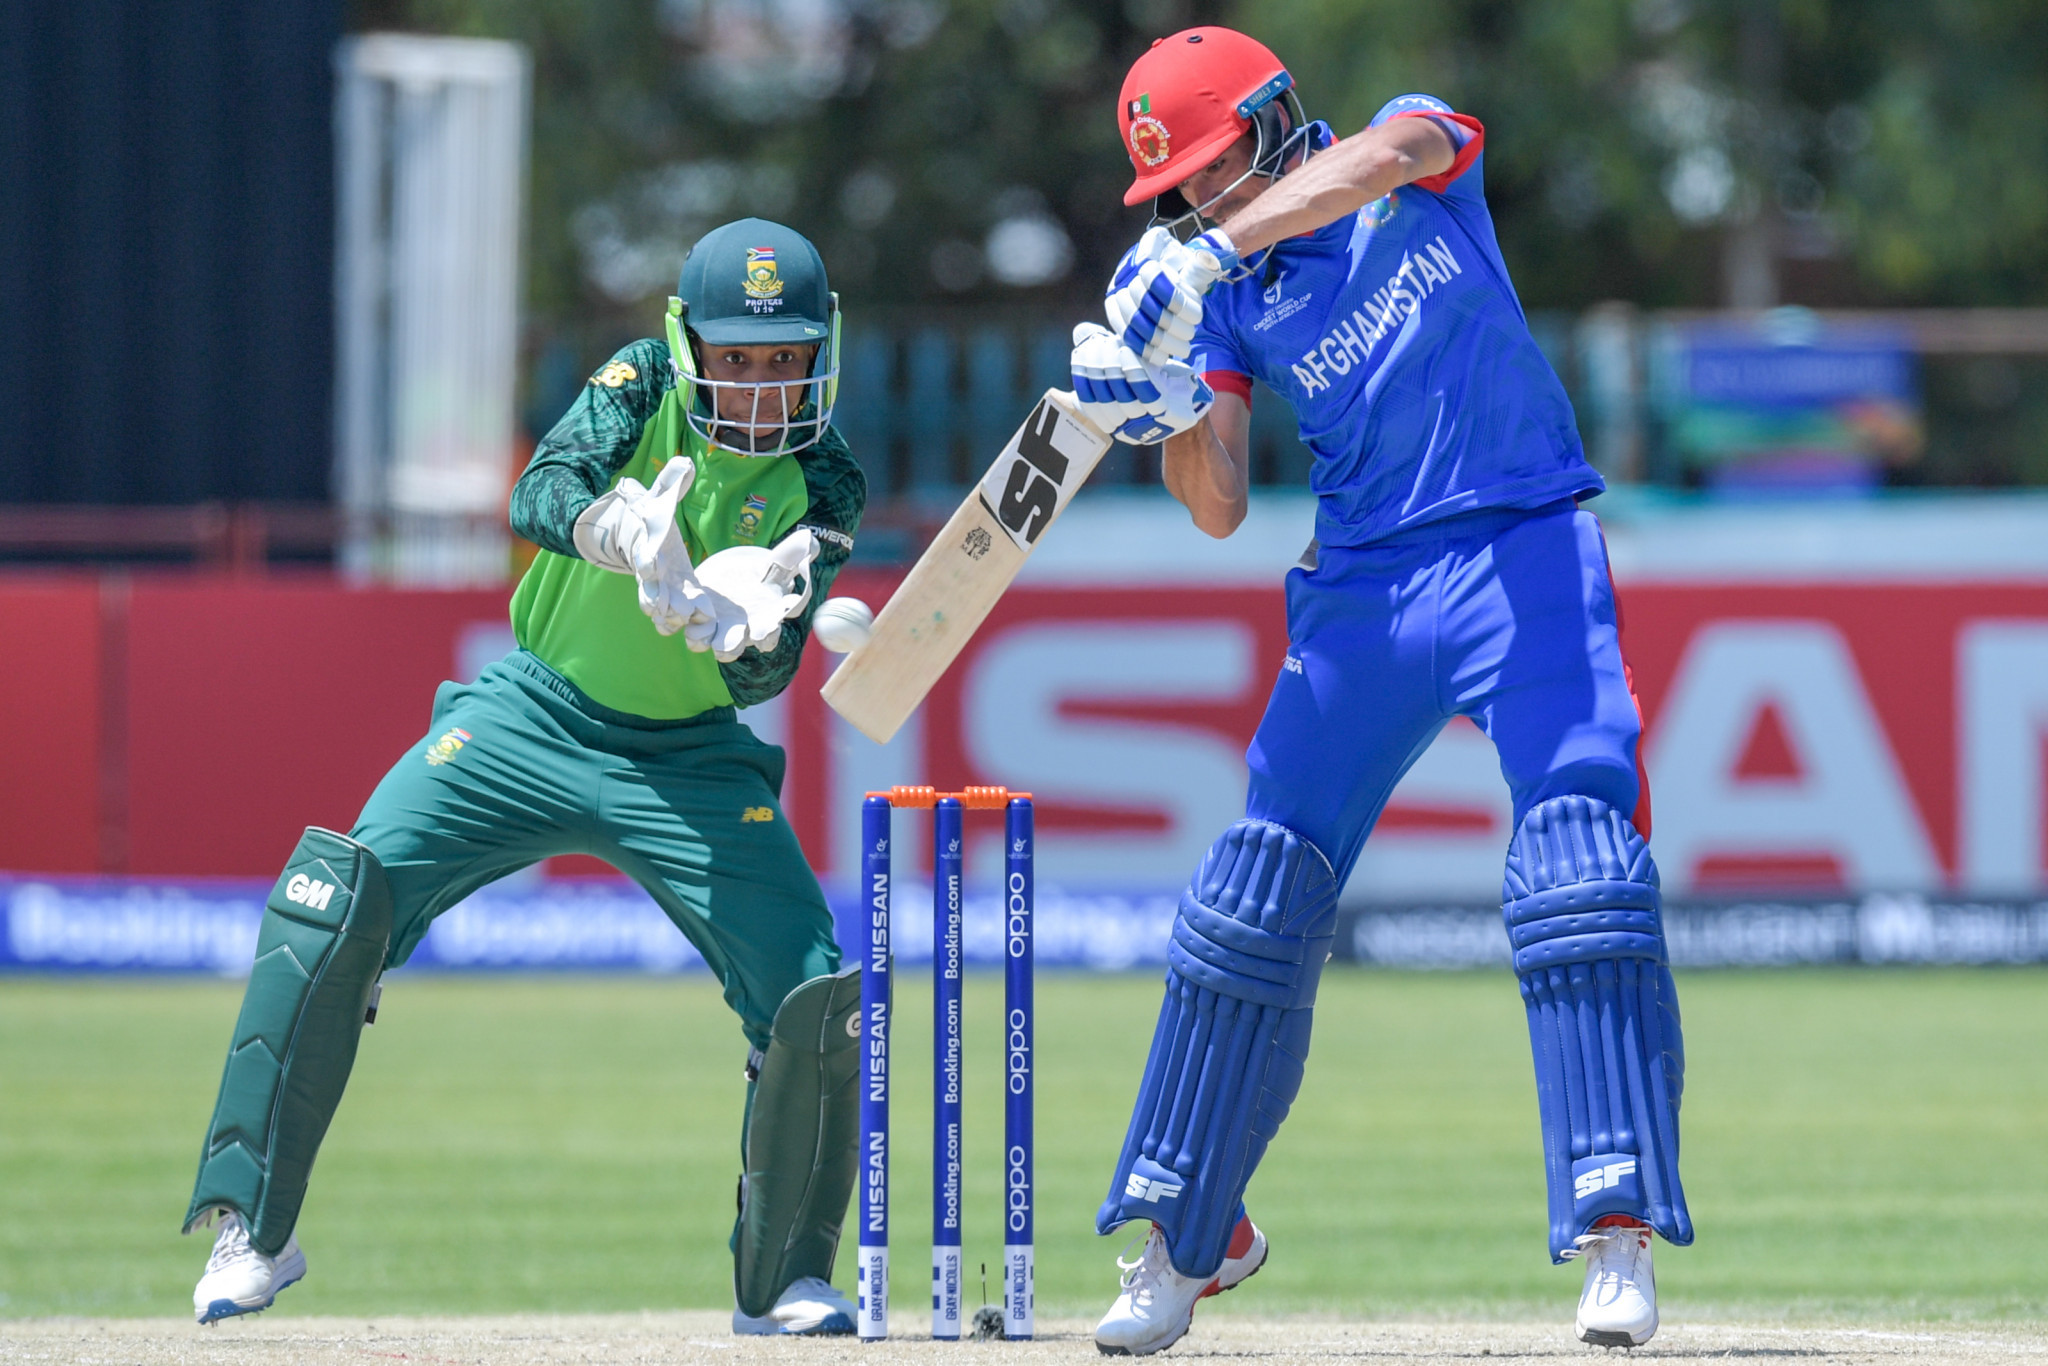 Afghanistan beat South African hosts in ICC Under-19 World Cup opener